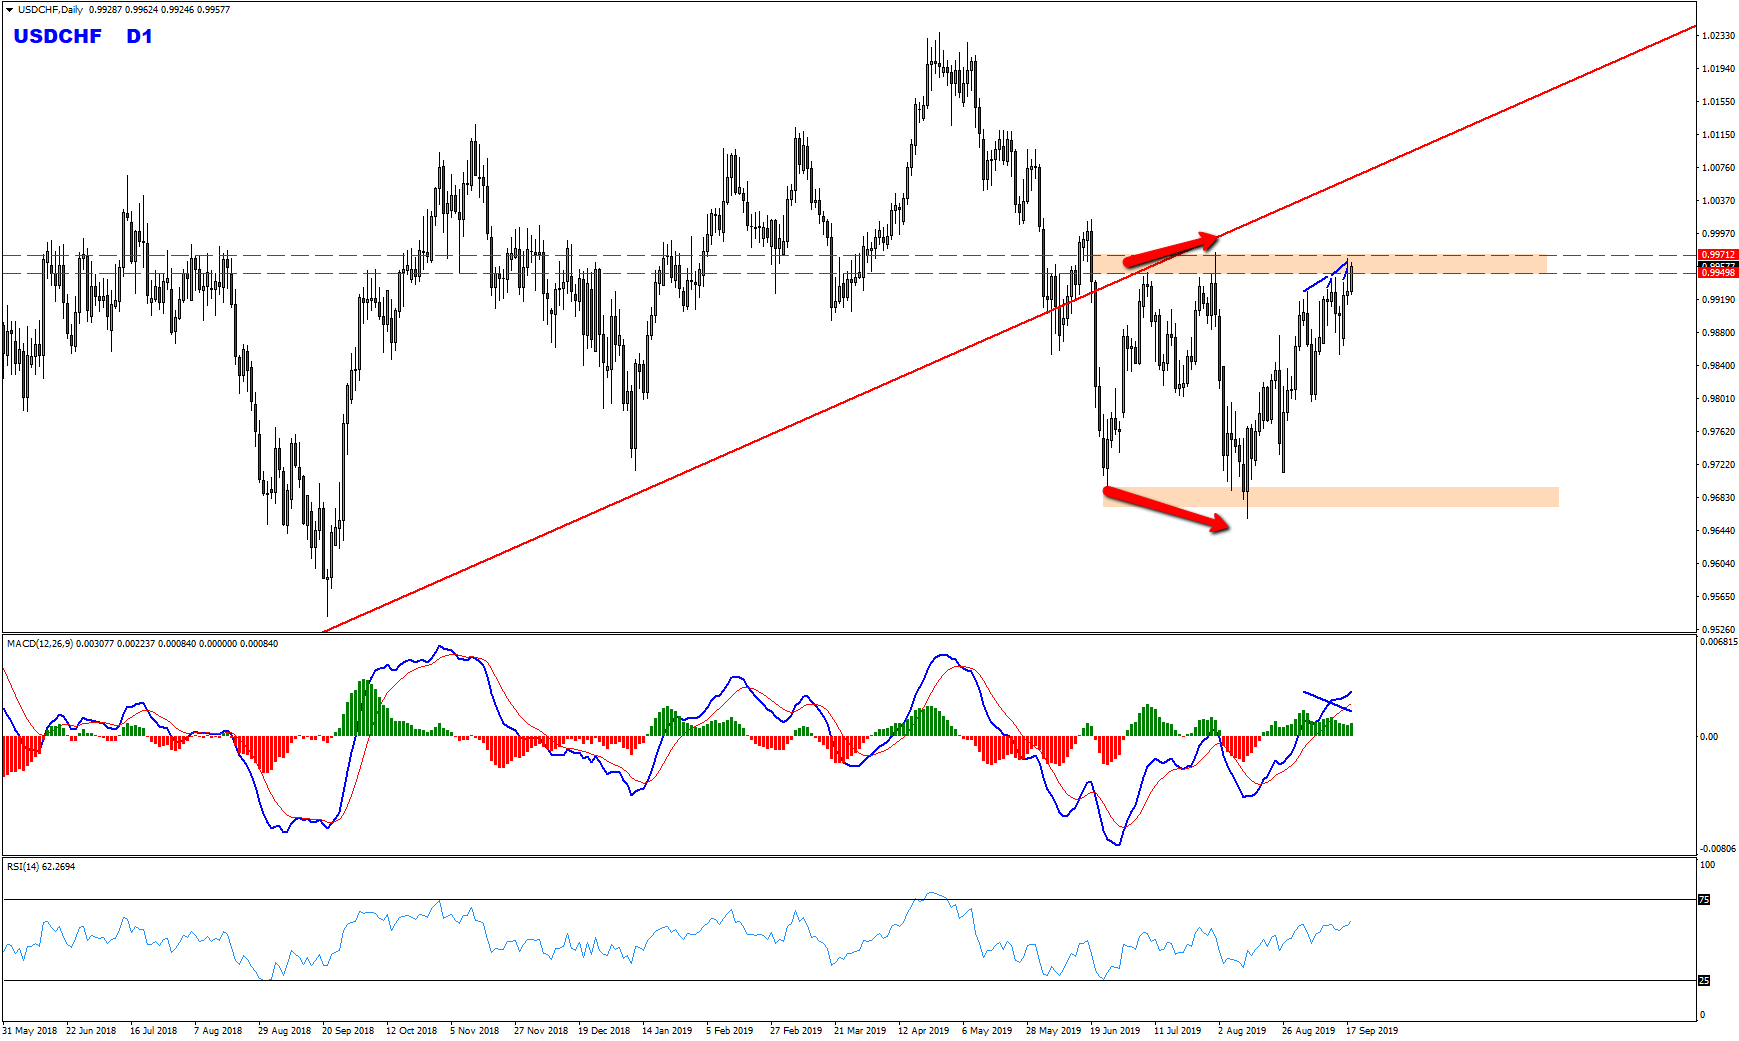 USDCHF Daily Range Provides Sell Opportunity